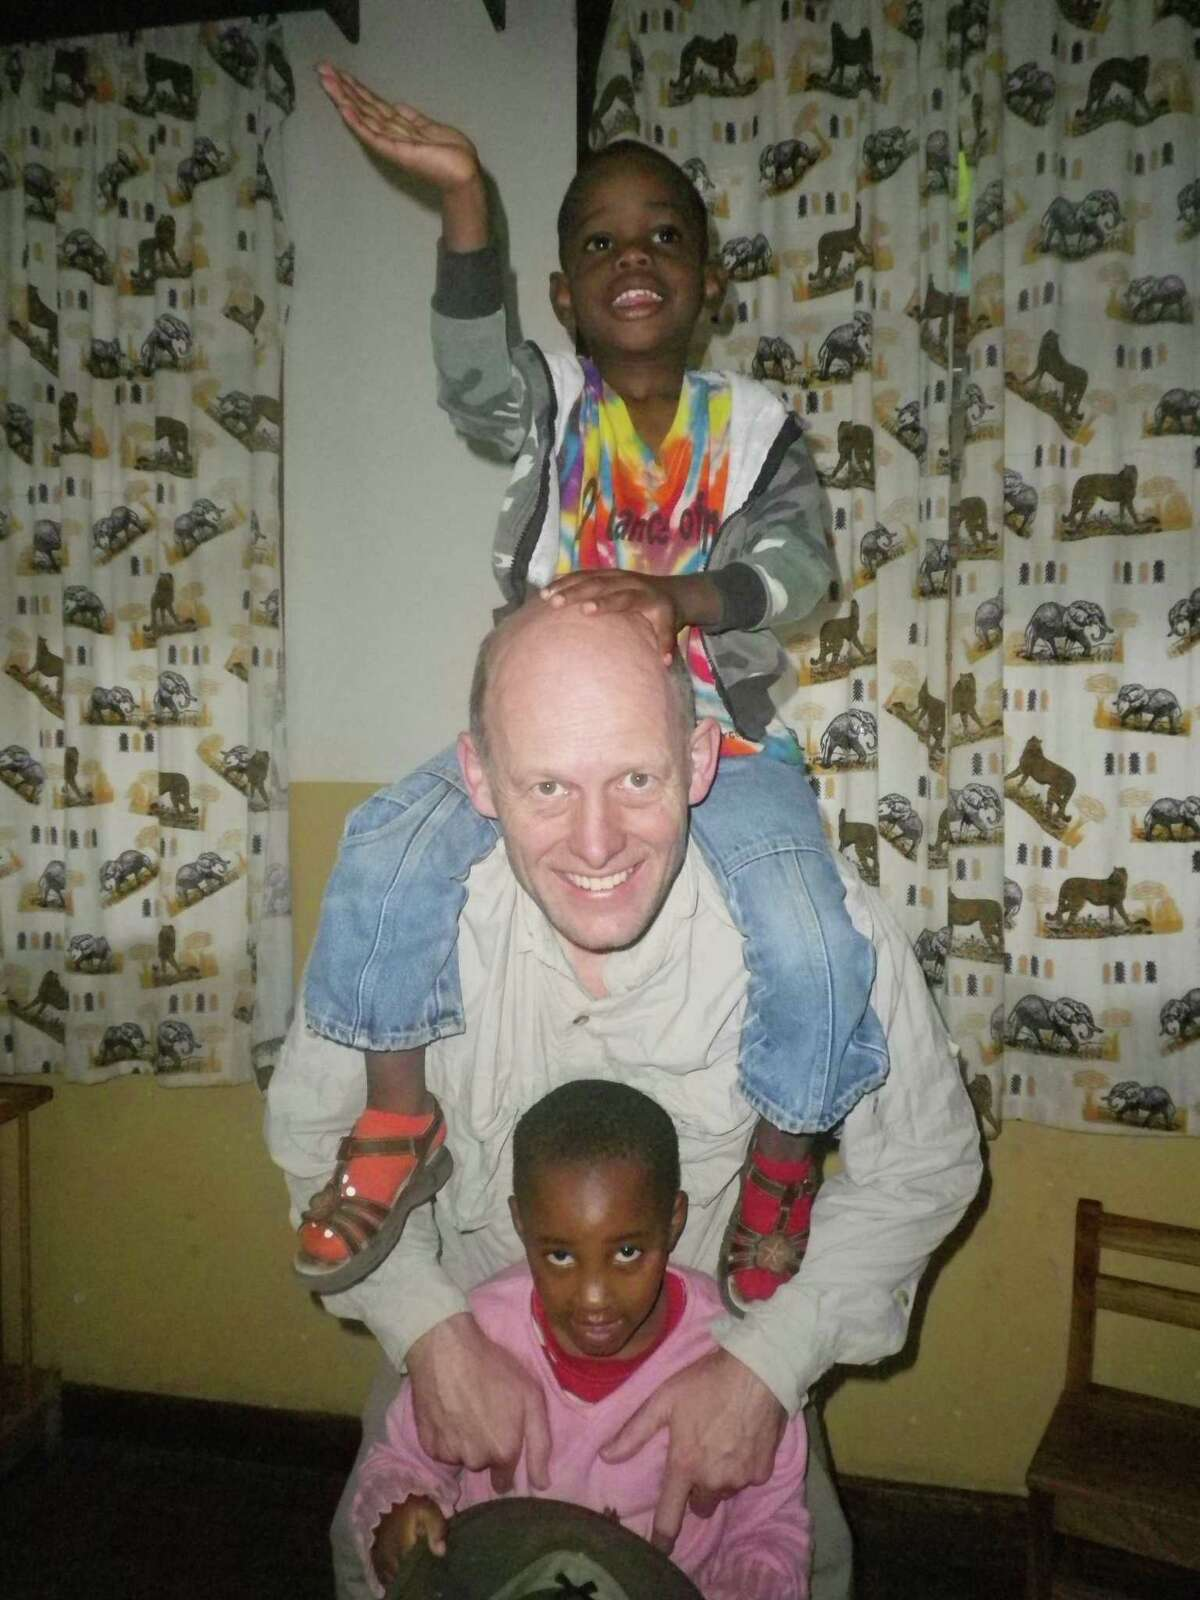 Dr. David Ross Russell plays with Stevie, on his shoulders, and Farajah at The Small Things orphanage in Nkoaranga, Tanzania.